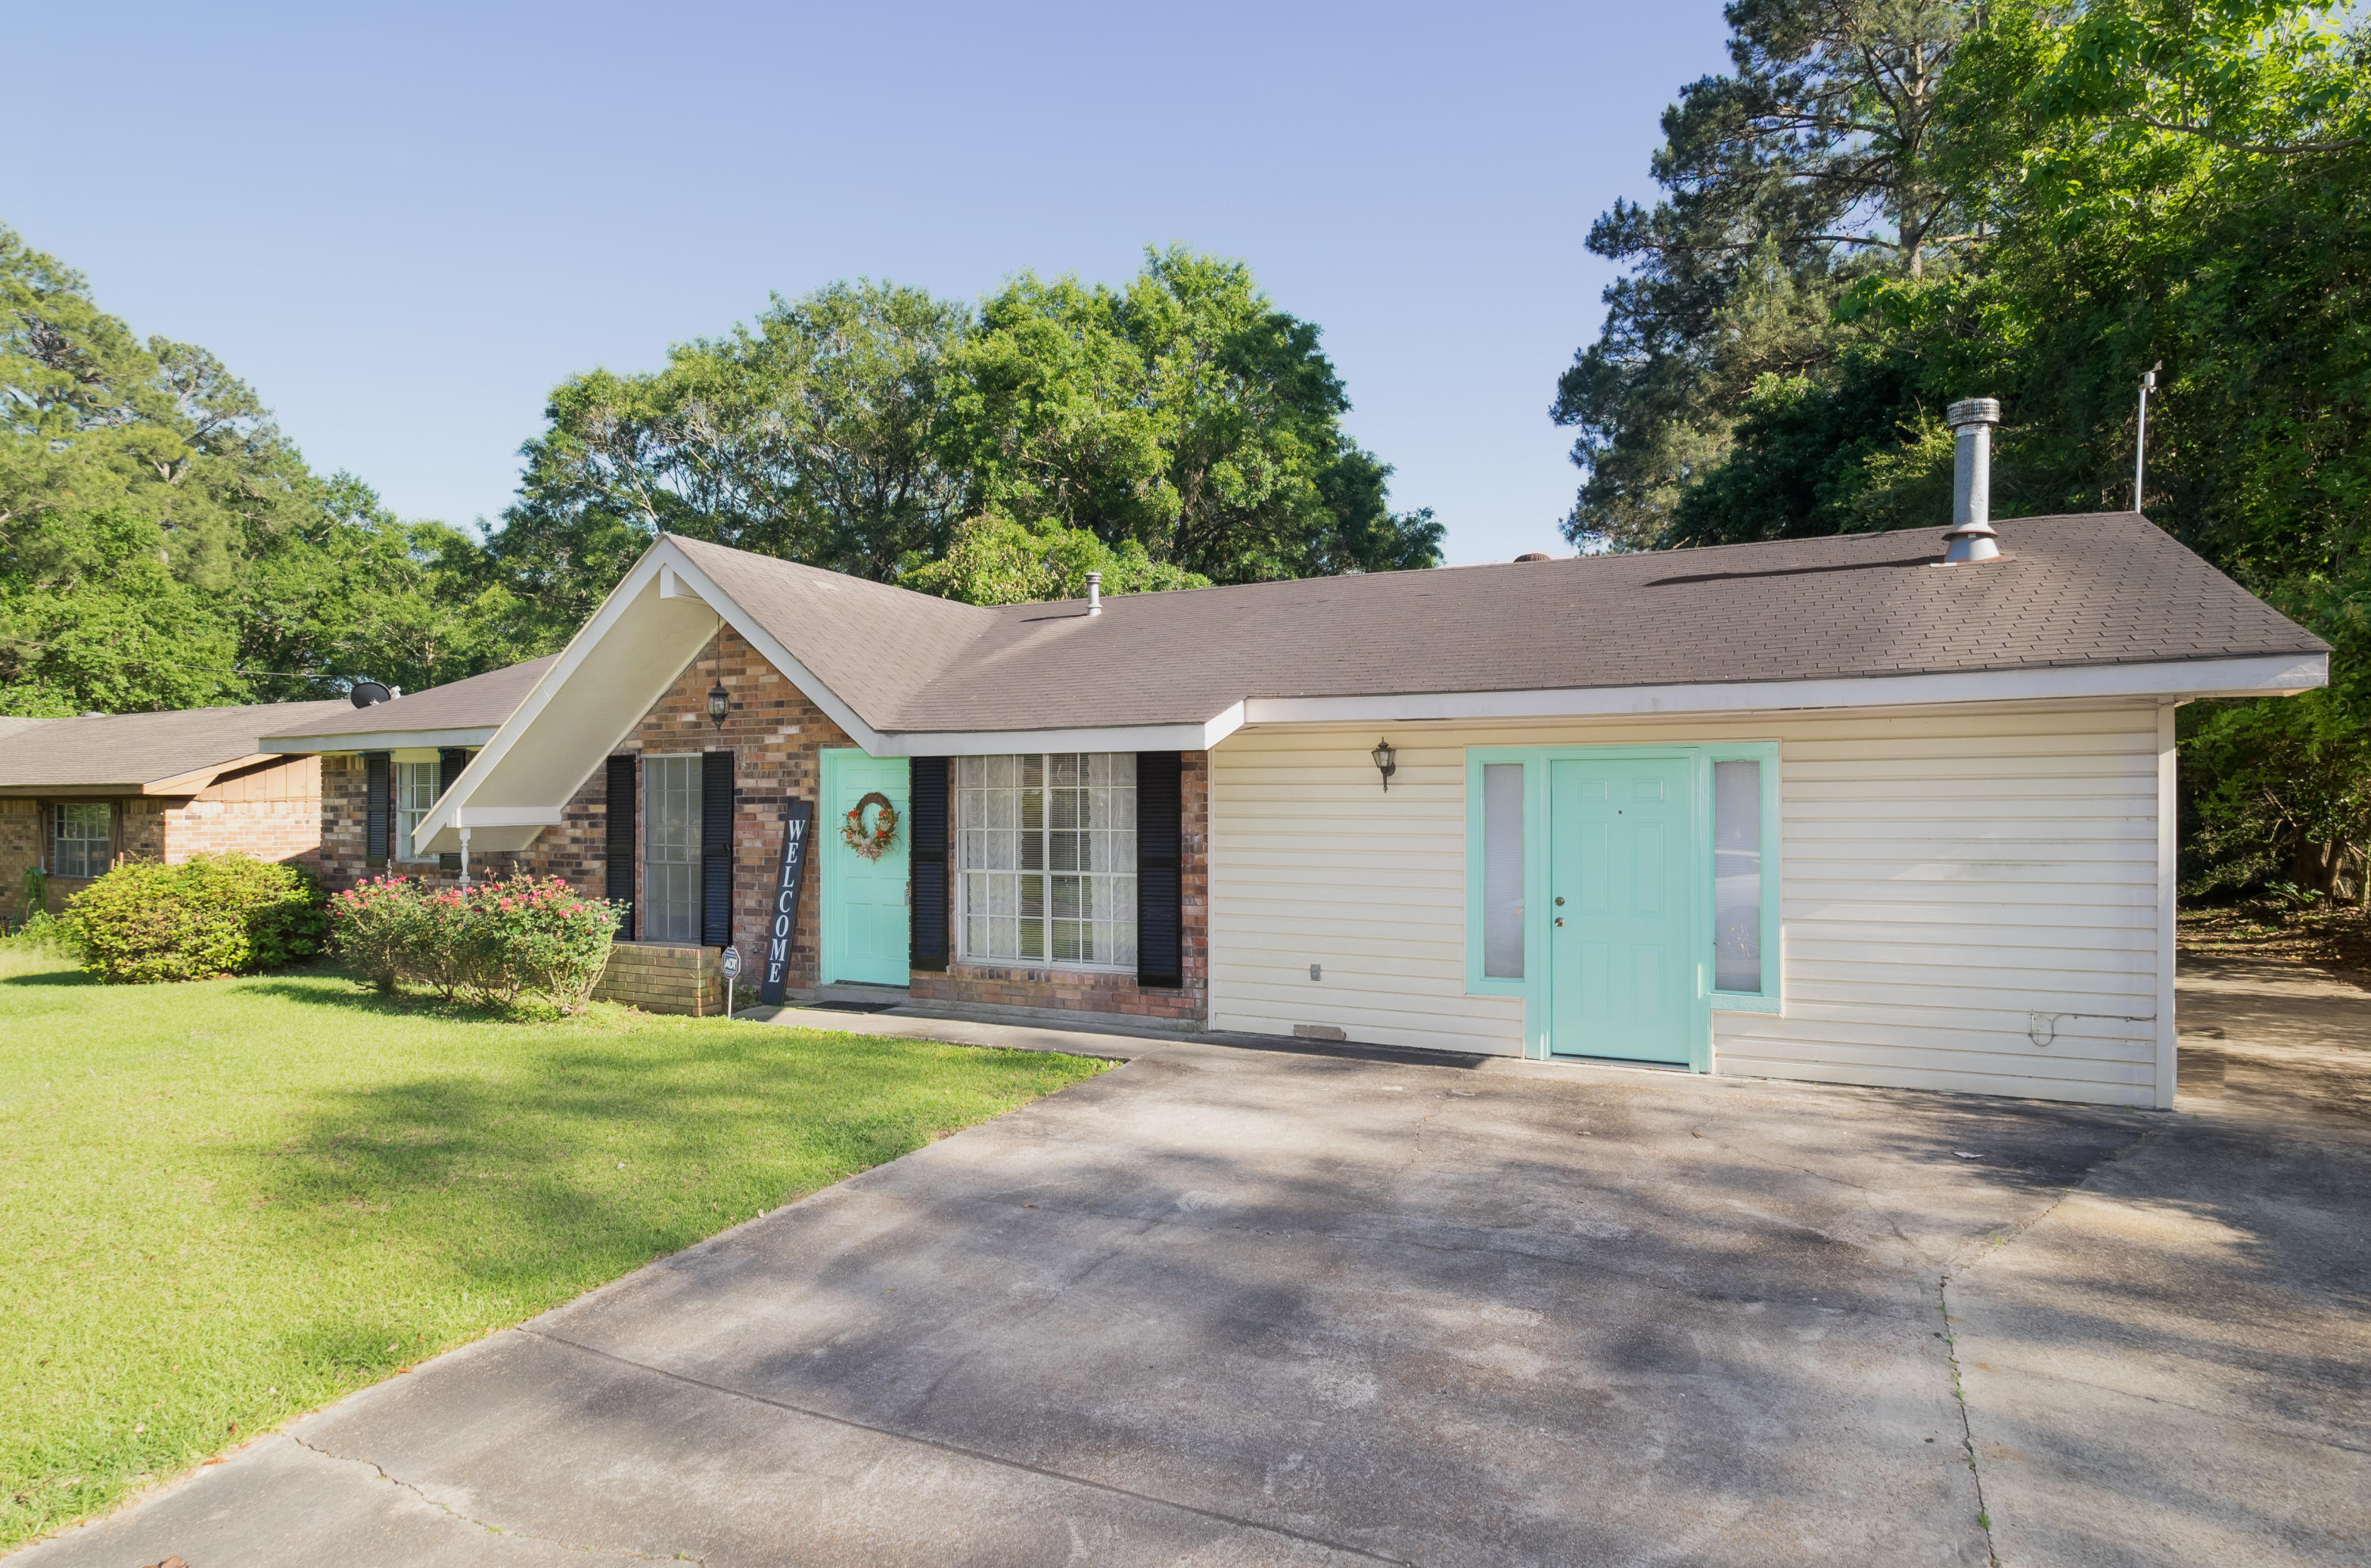 DeRidder home for sale, 802 W. 8TH STREET, DeRidder LA - $124,900